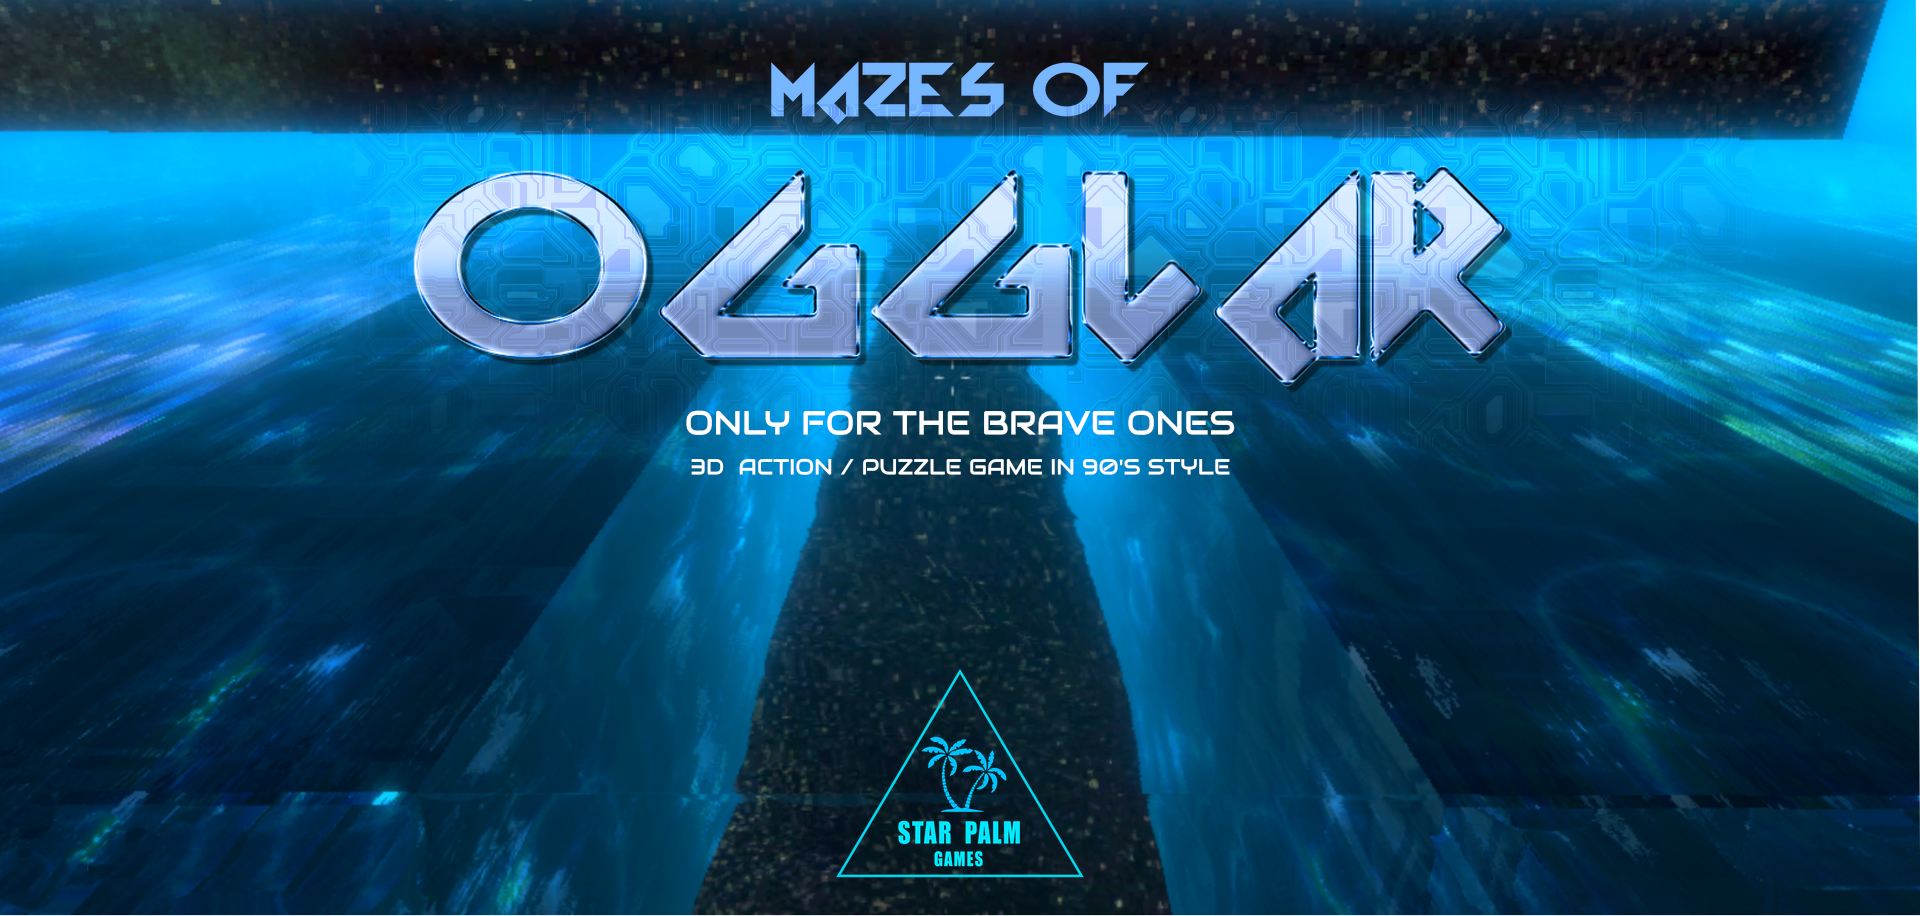 MAZES OF OGGLAR